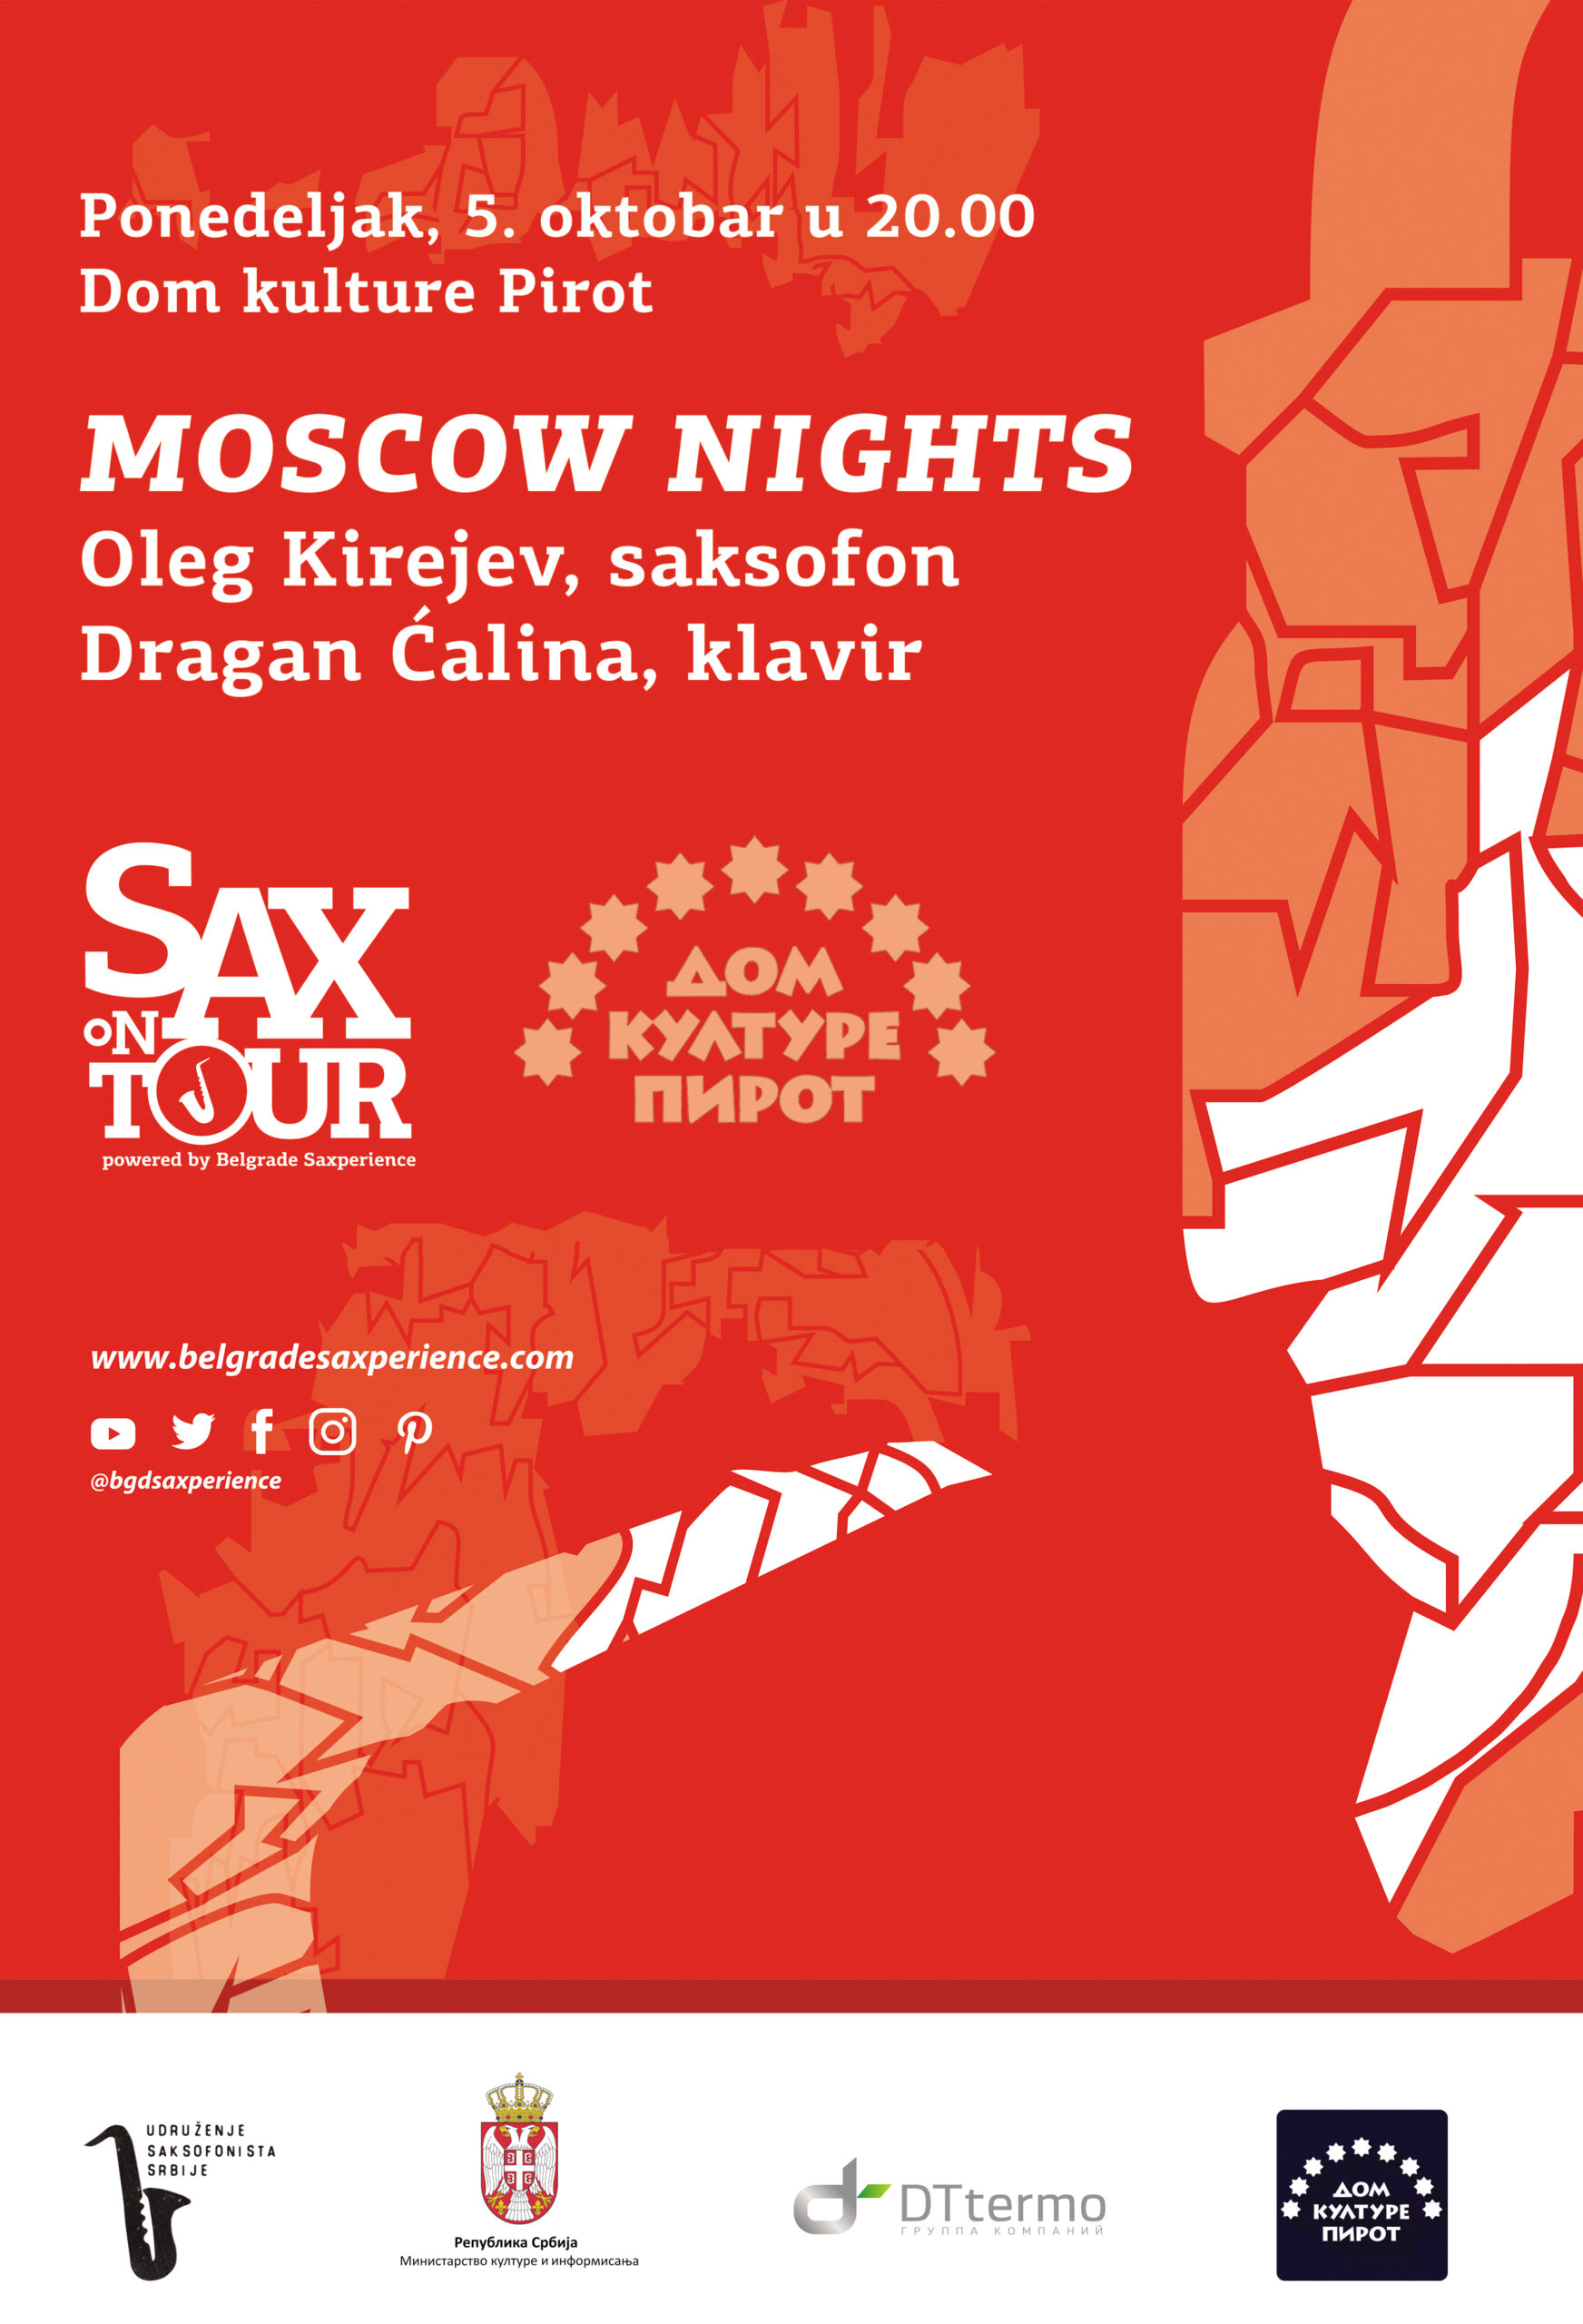 moscow nights koncert pirot dom kulture